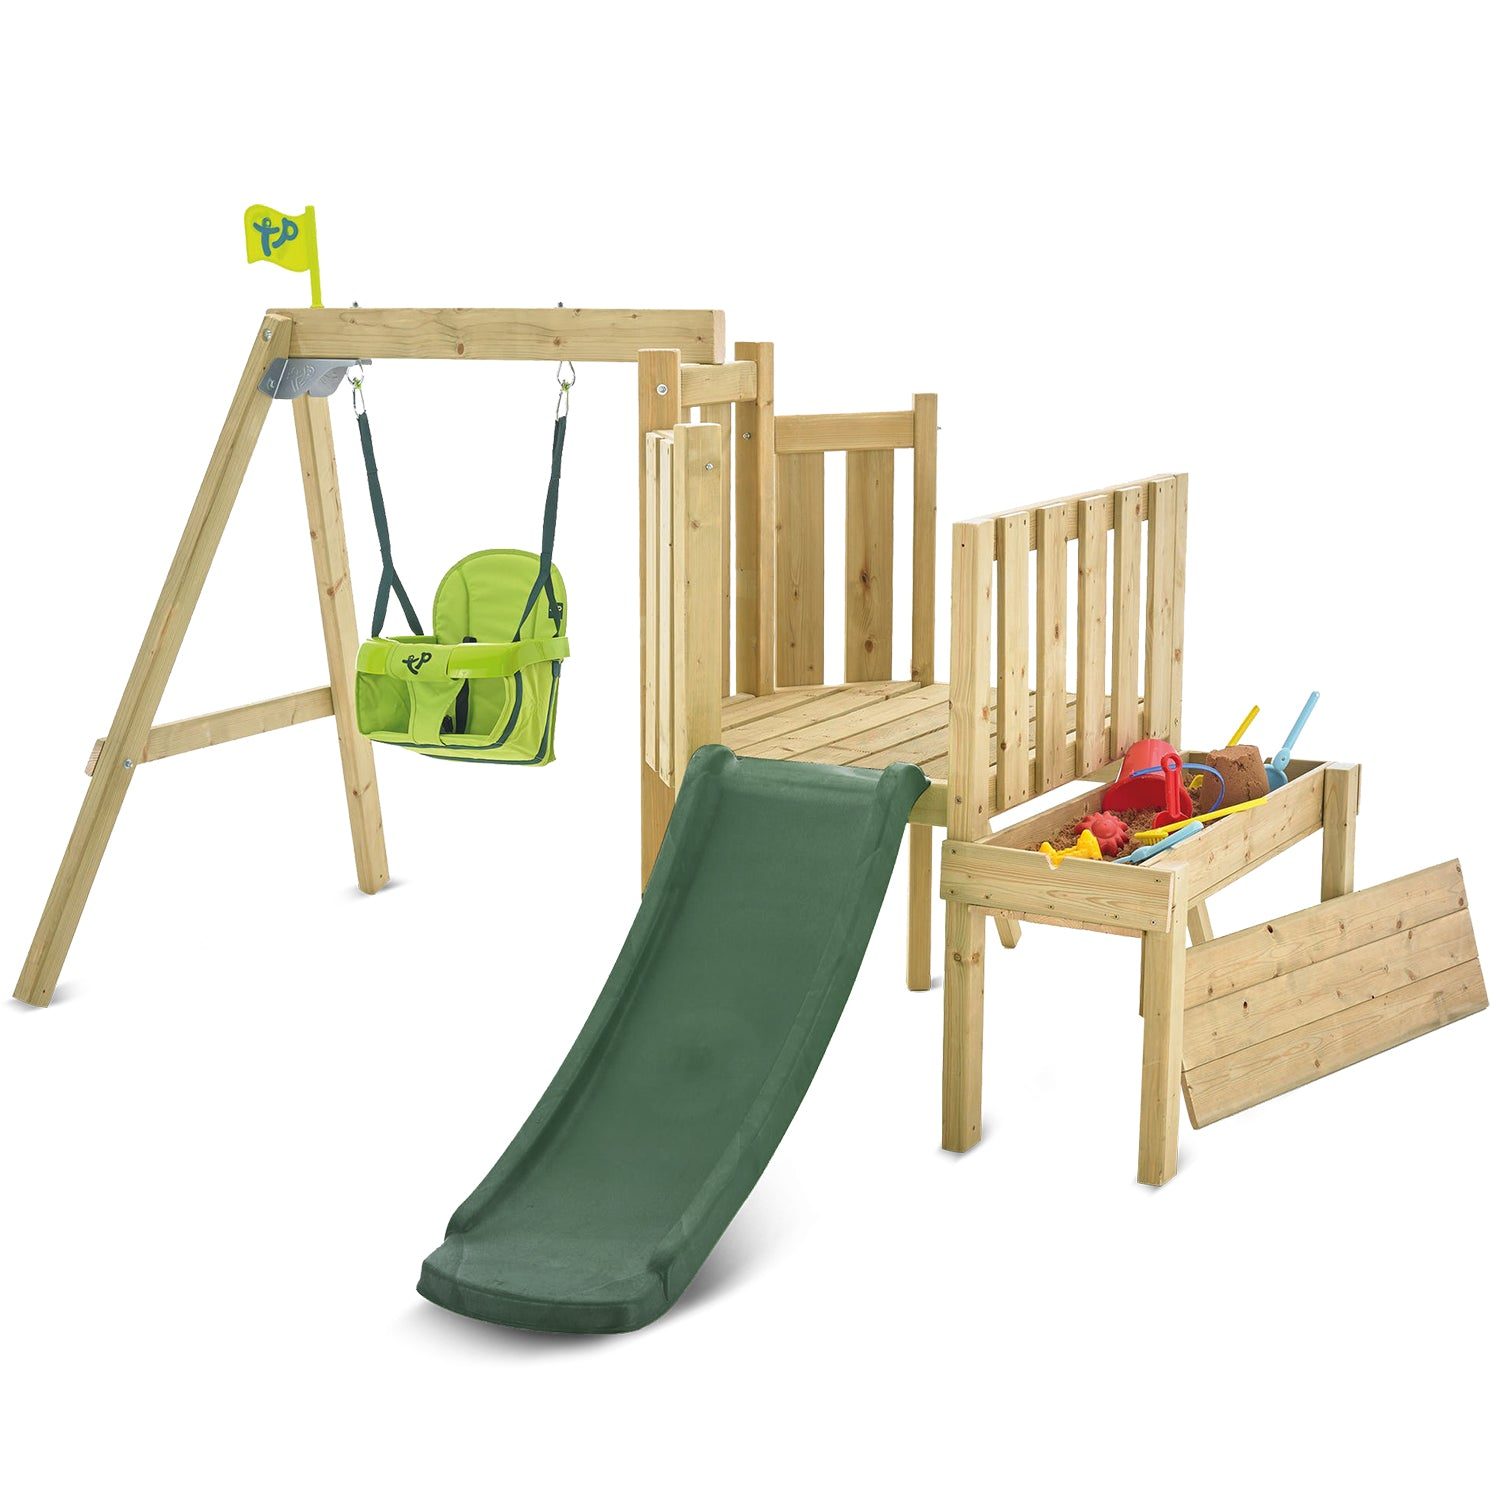 TP Toys Toddler Tower Slide and Swing Set with Folding Seat